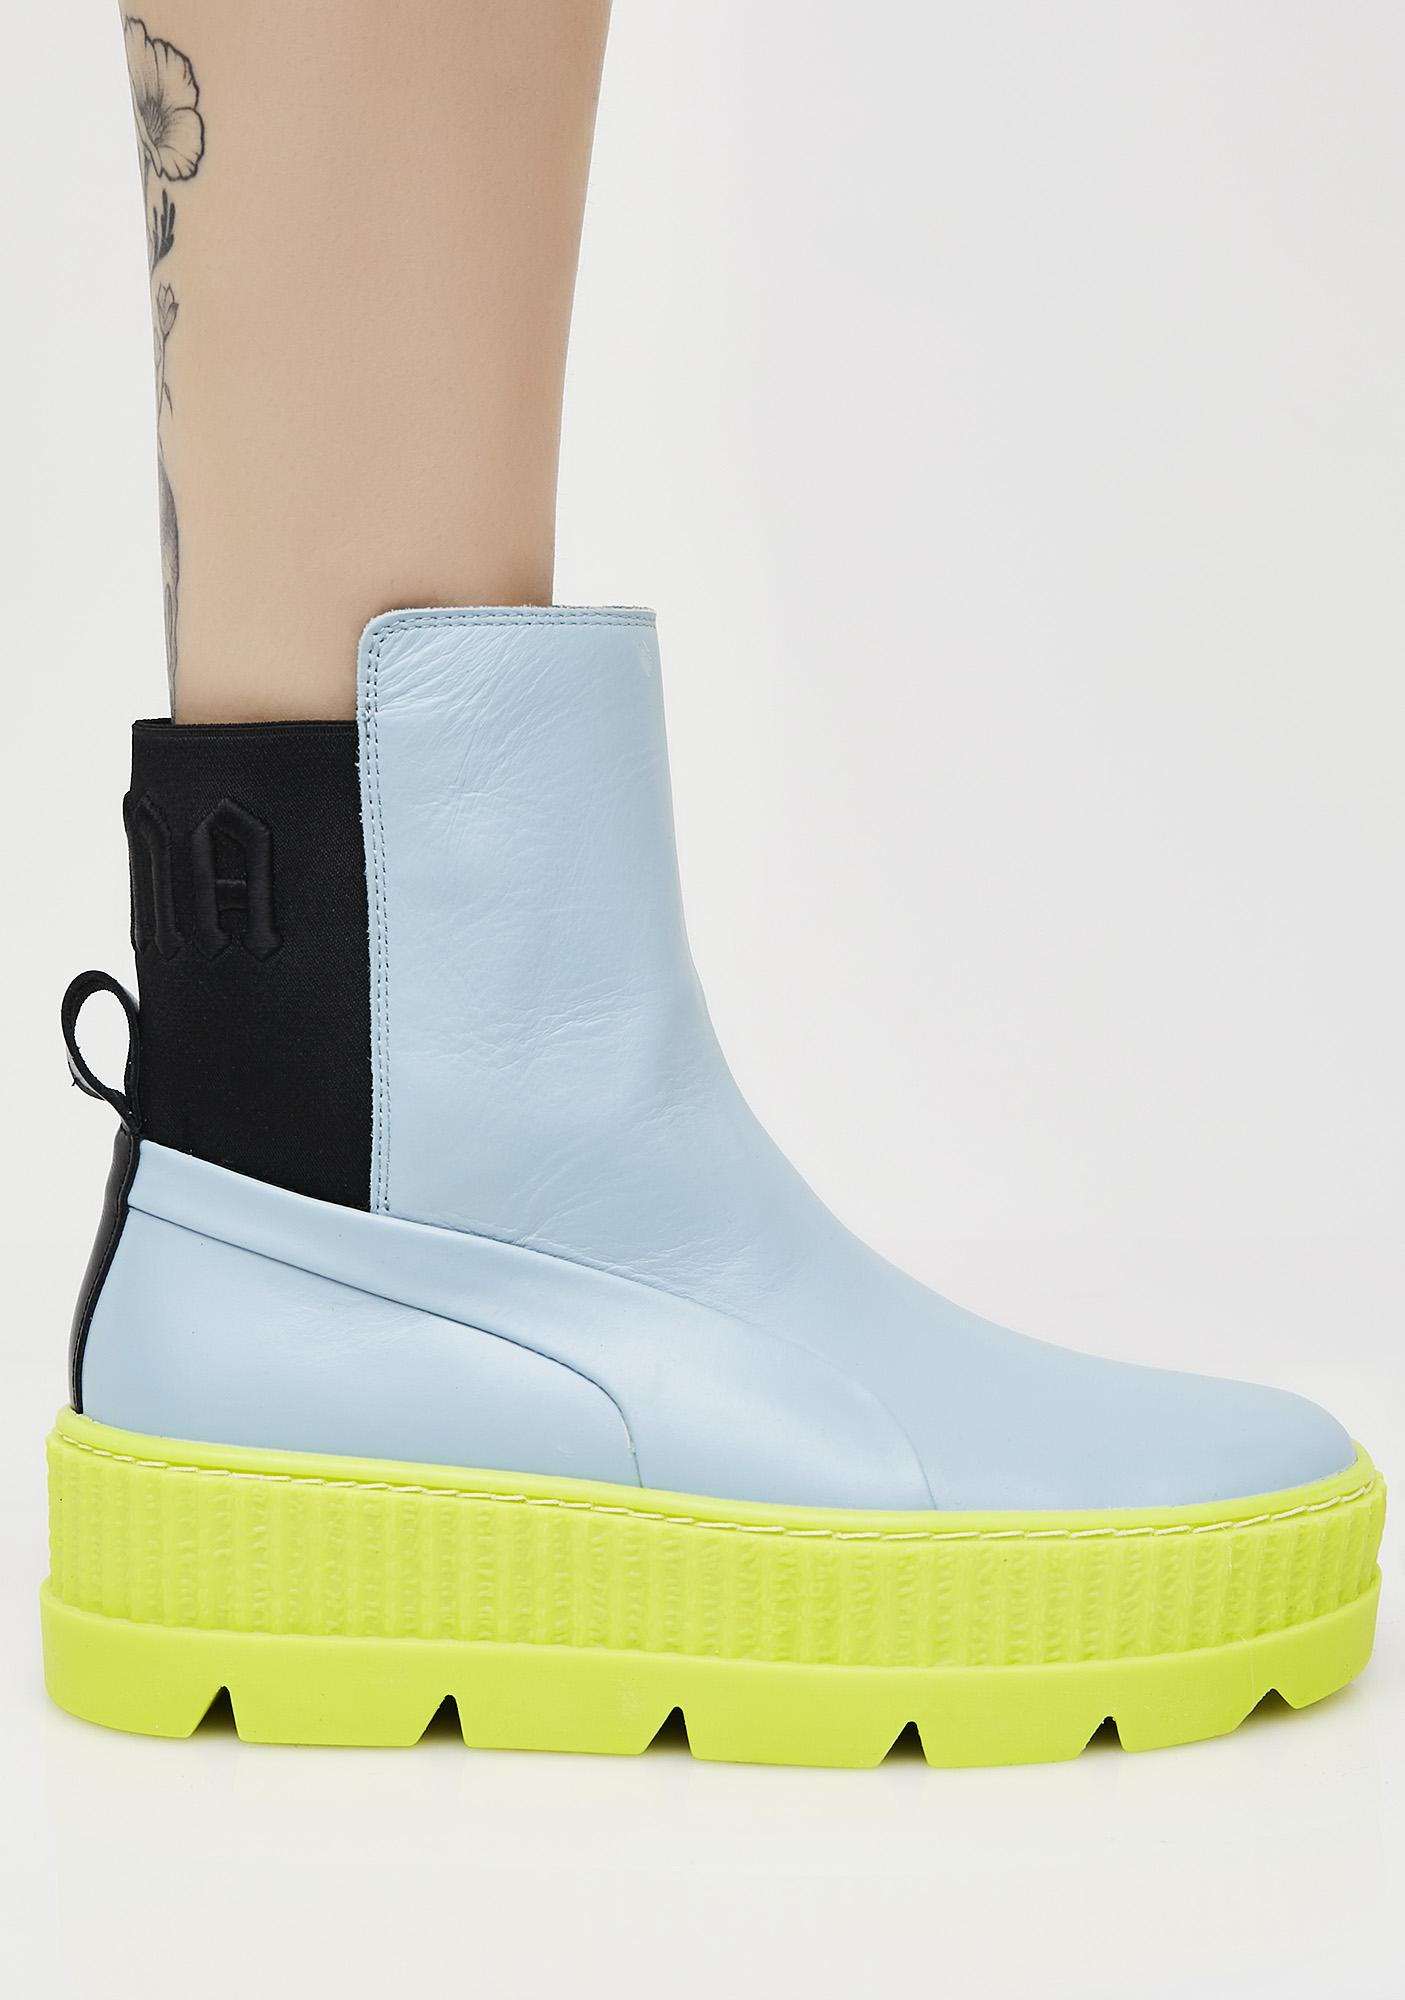 new product b7afc 3c0d3 Neon FENTY PUMA By Rihanna Chelsea Sneaker Boots